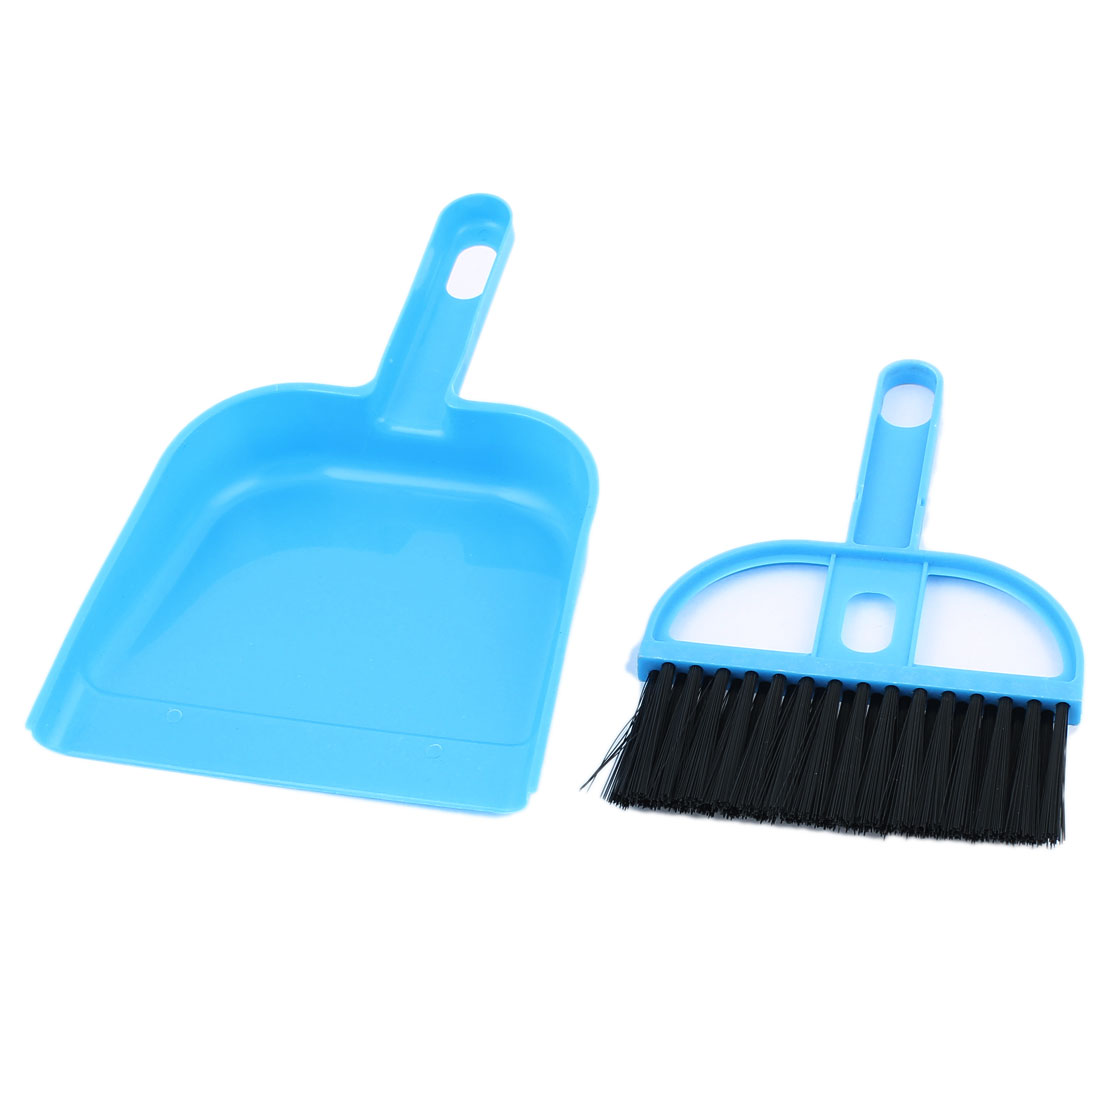 Car Internal Cleaner Tool Keyboard Air Outlet Vent Cleaning Brush Dustpan Blue 4 Sets